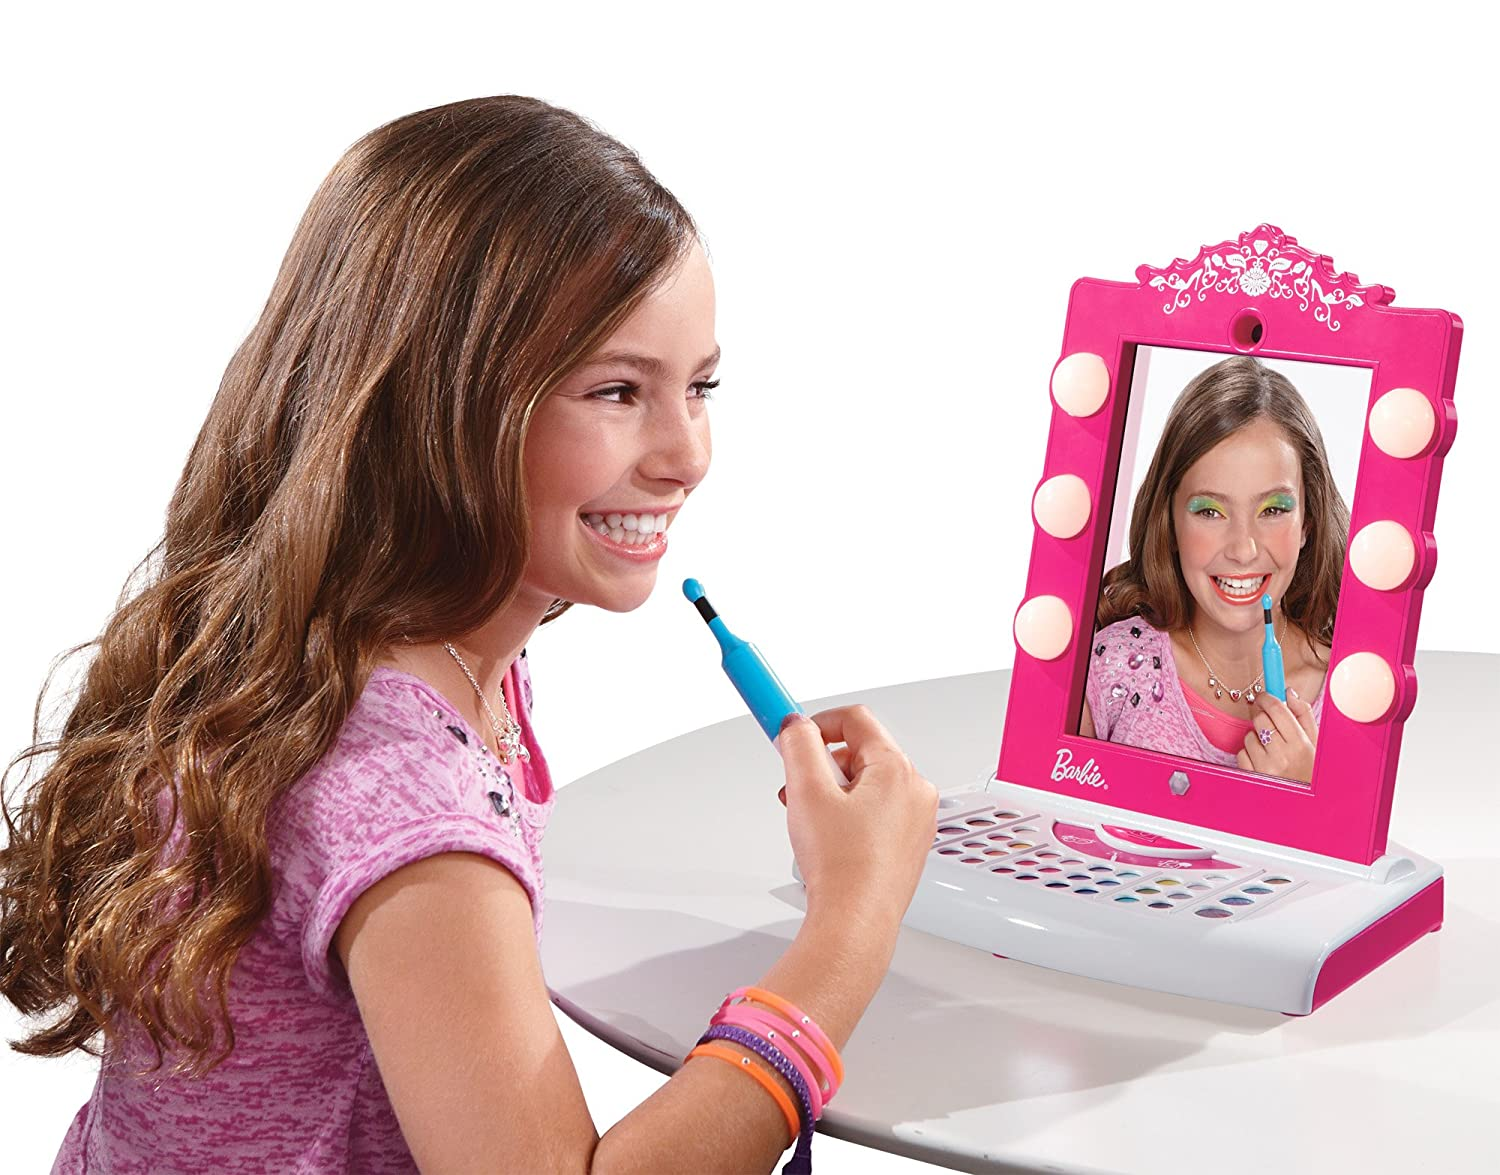 Cool Toys For Ages 10 And Up : Barbie digital makeover mirror review